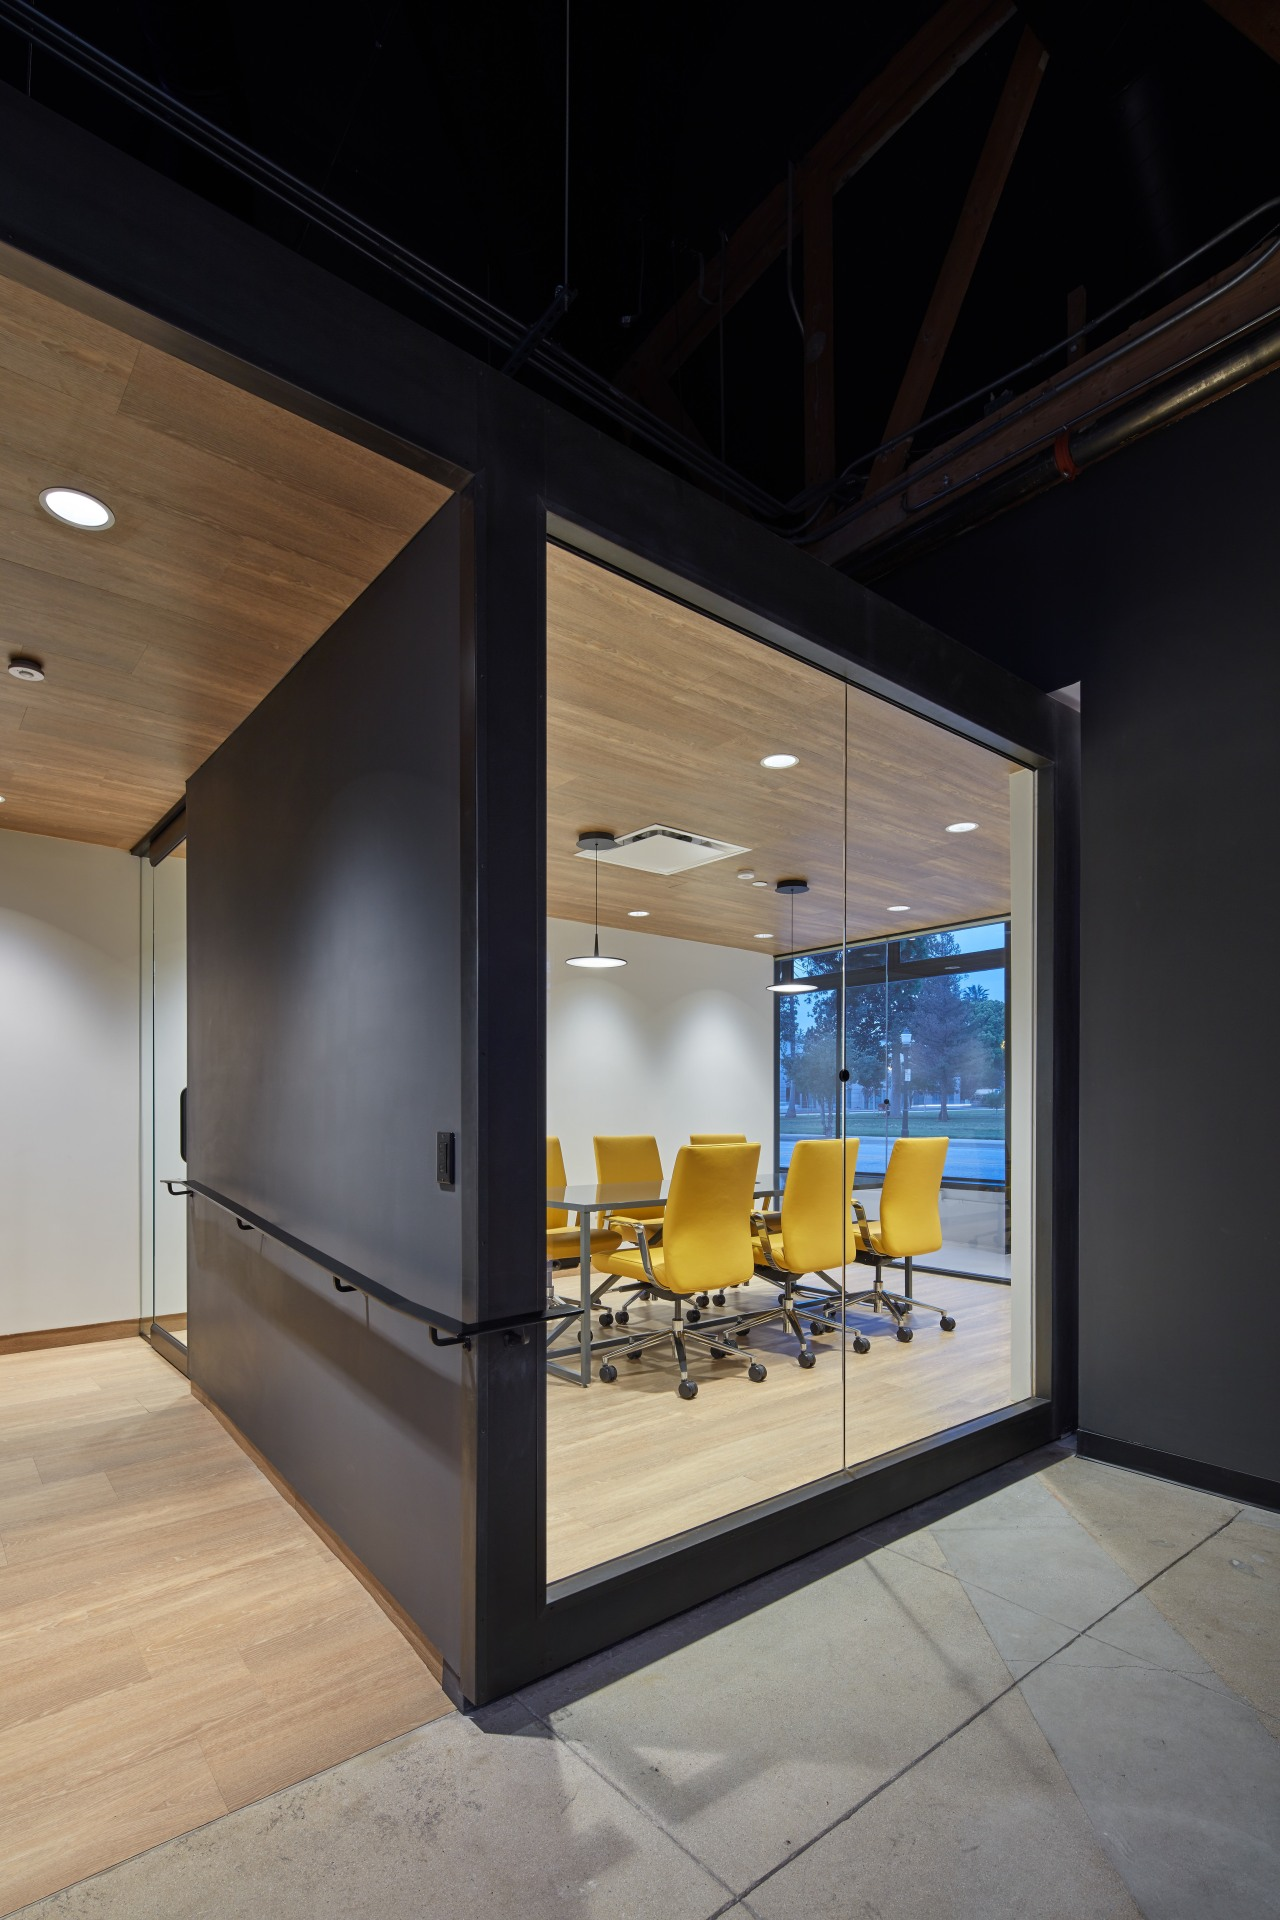 The conference room at Supplyframe DesignLab is one architecture, house, interior design, black, gray